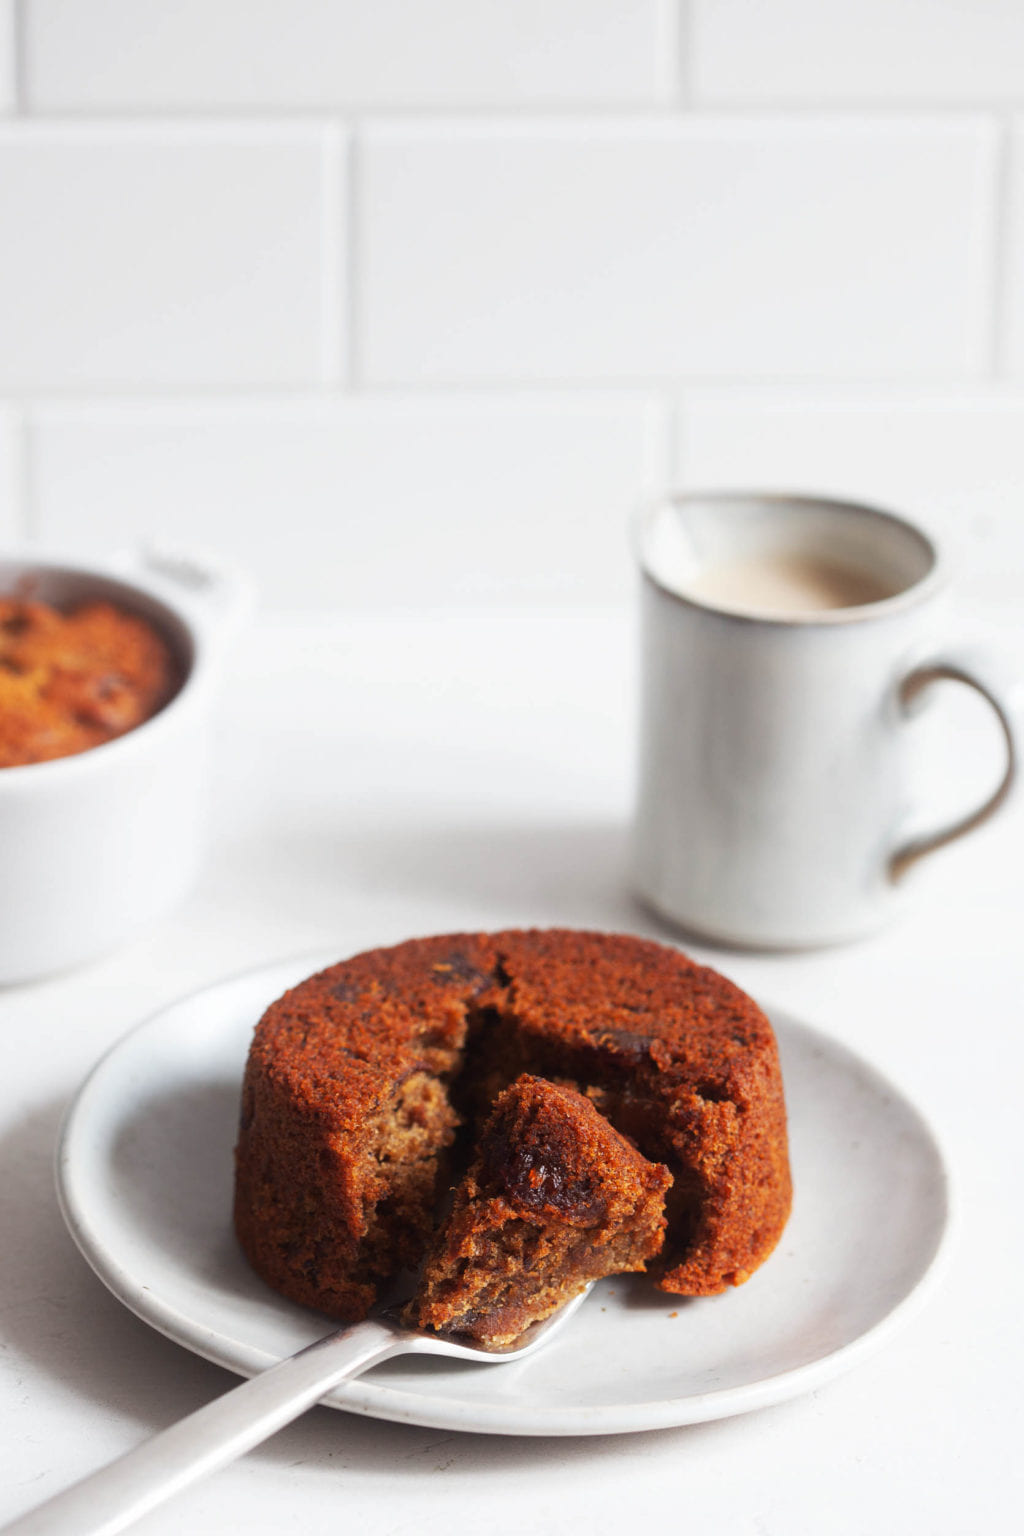 The plant-type sticky toffee pudding is placed on the dessert board, covered with dates. Cut a piece of pudding into small pieces with a fork.